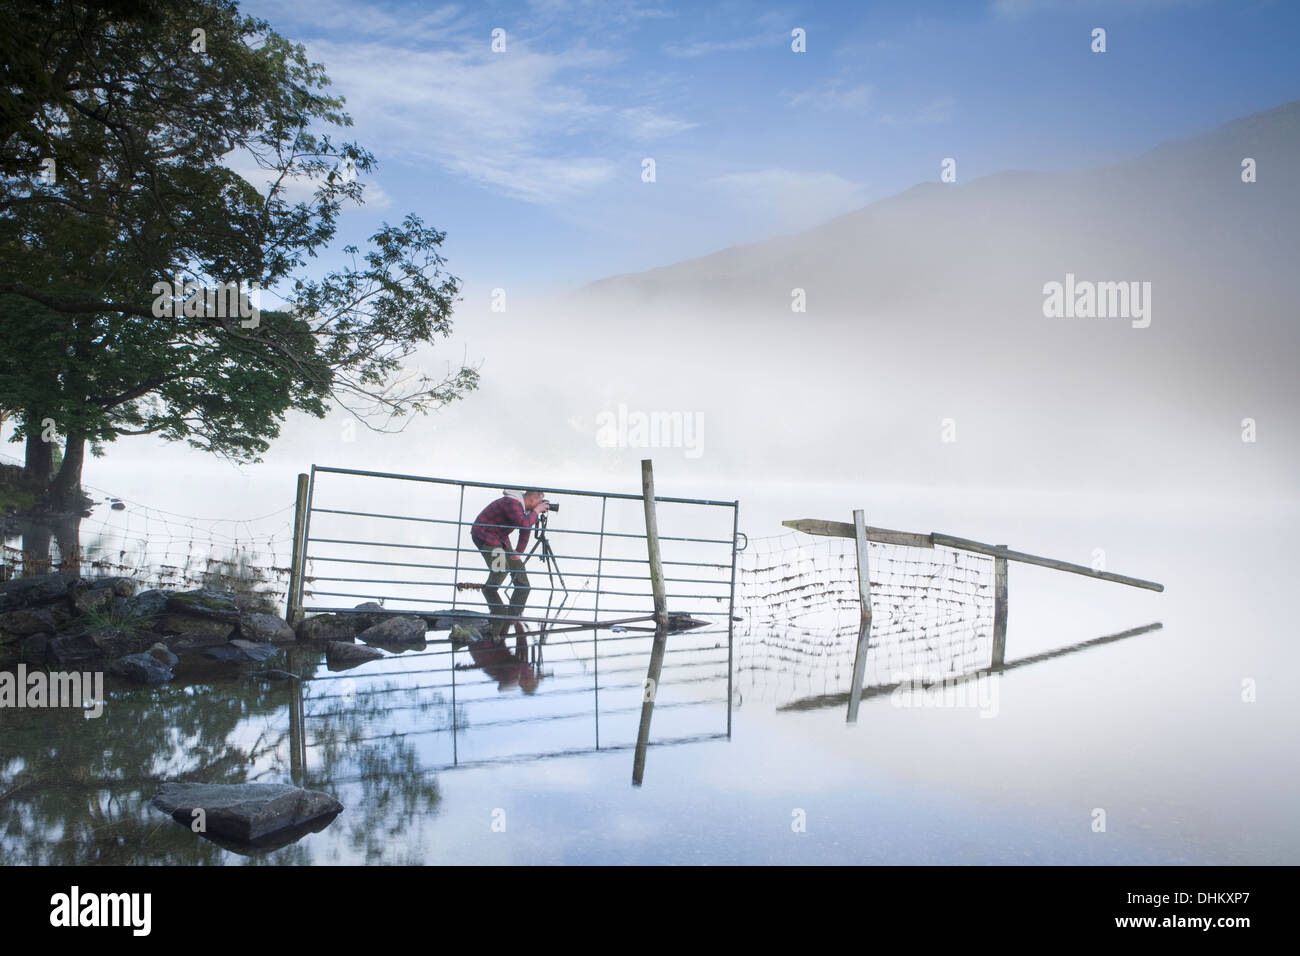 Photographer in a red coat taking a photograph of a fence and reflection going into Llyn Gwynant, Snowdonia, Wales. Stock Photo